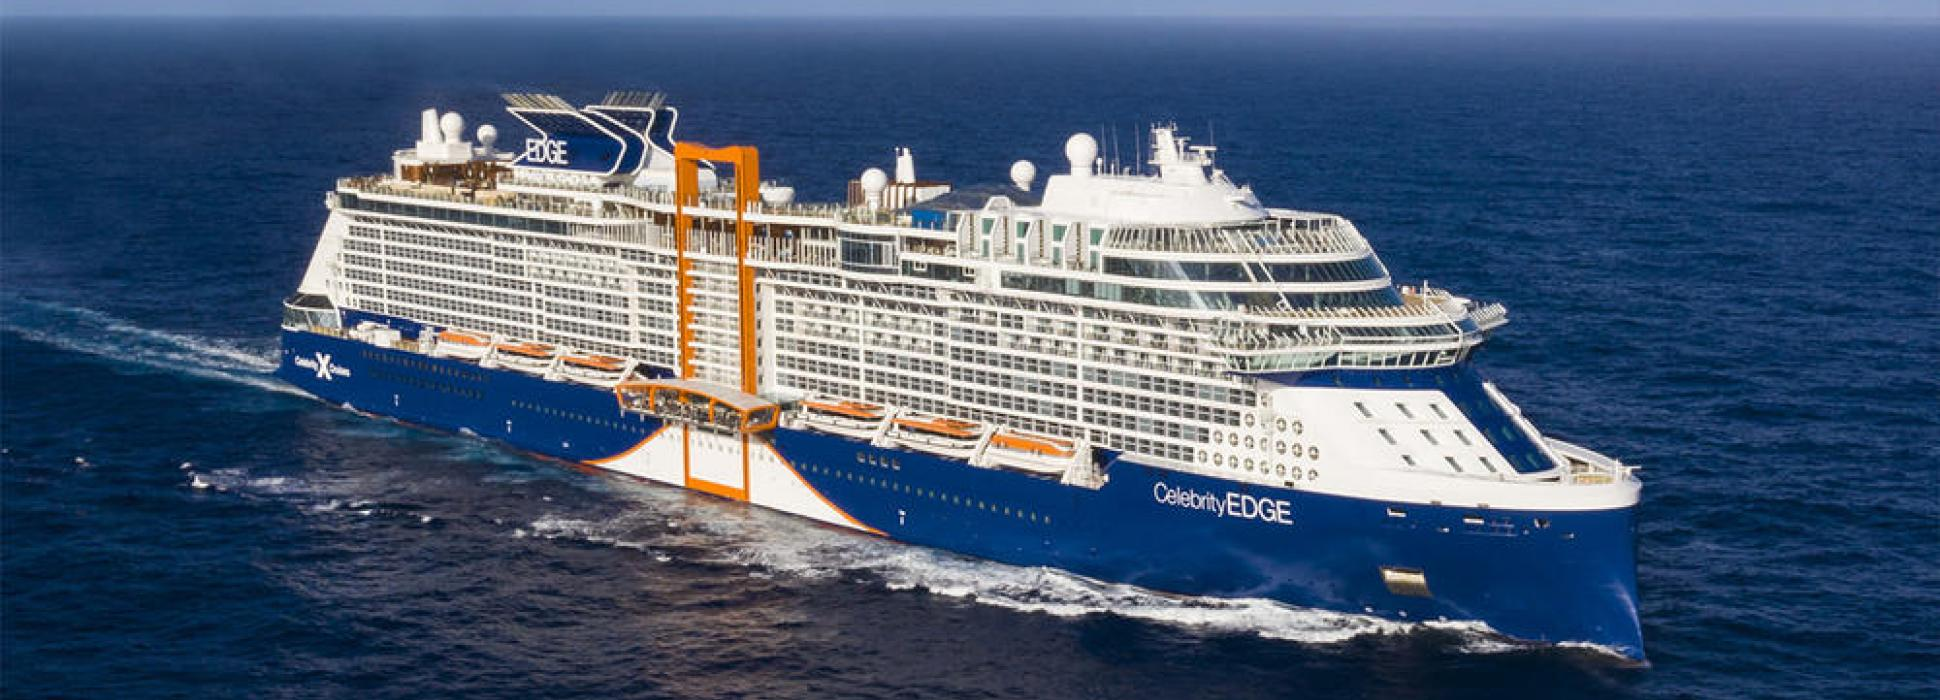 Celebrity Edge is the 2018 winner of the best new liner by the website Cruise Critic